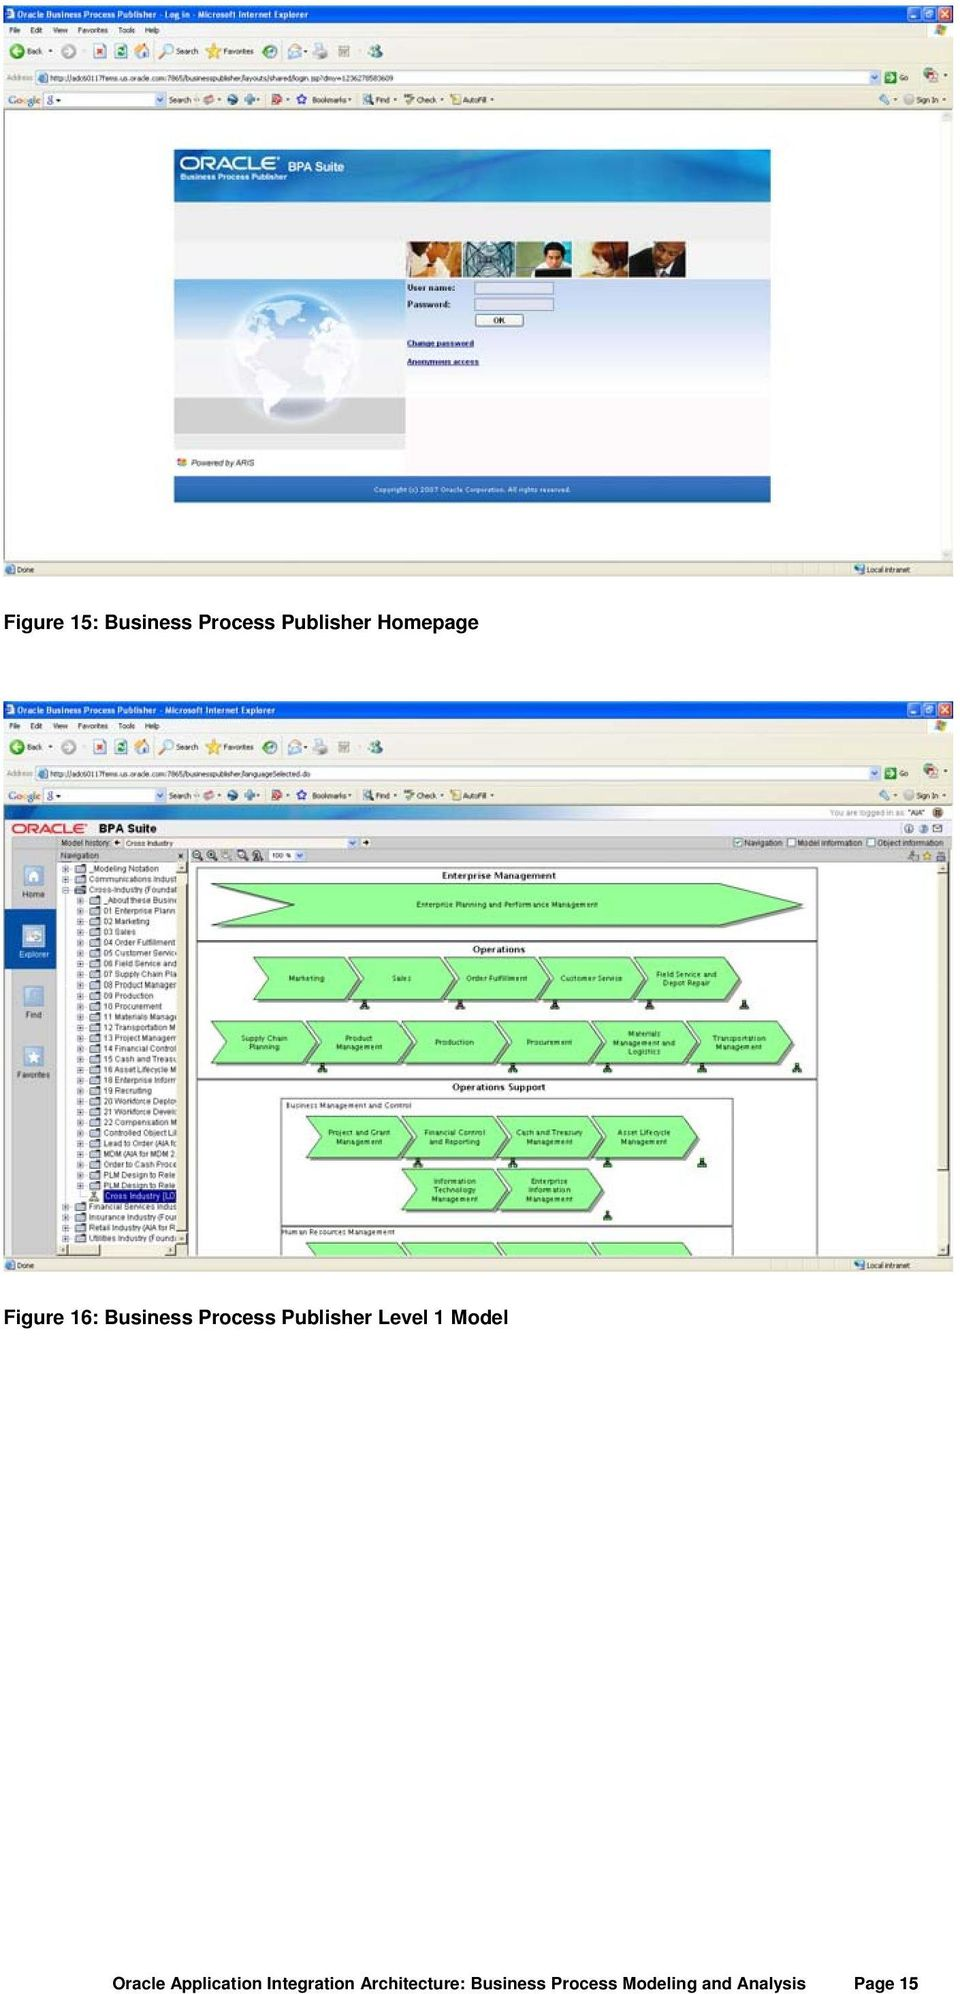 Model Oracle Application Integration